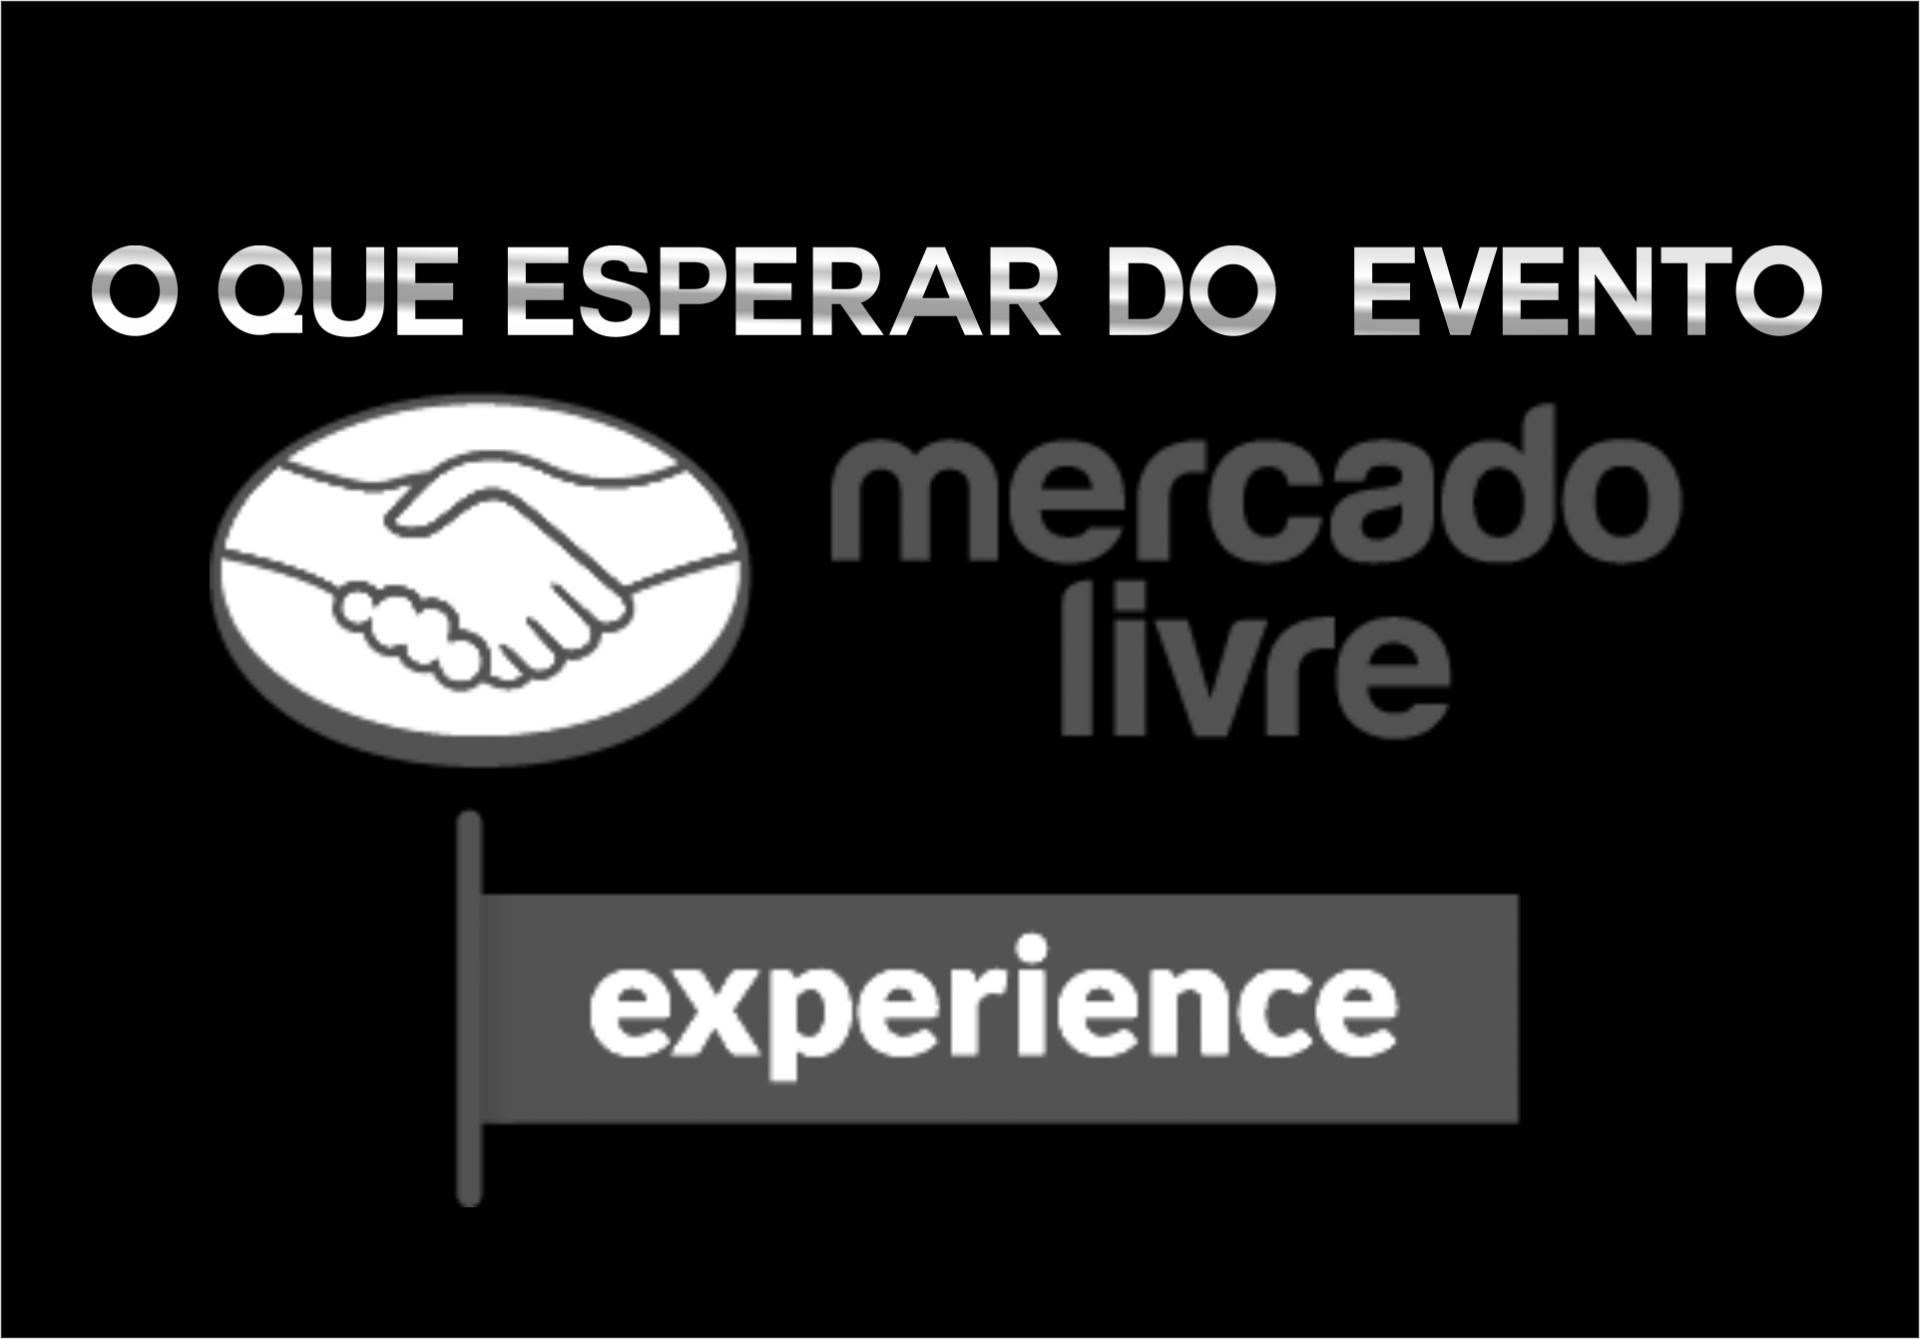 O que esperar do evento Mercado Livre Experience 2017?